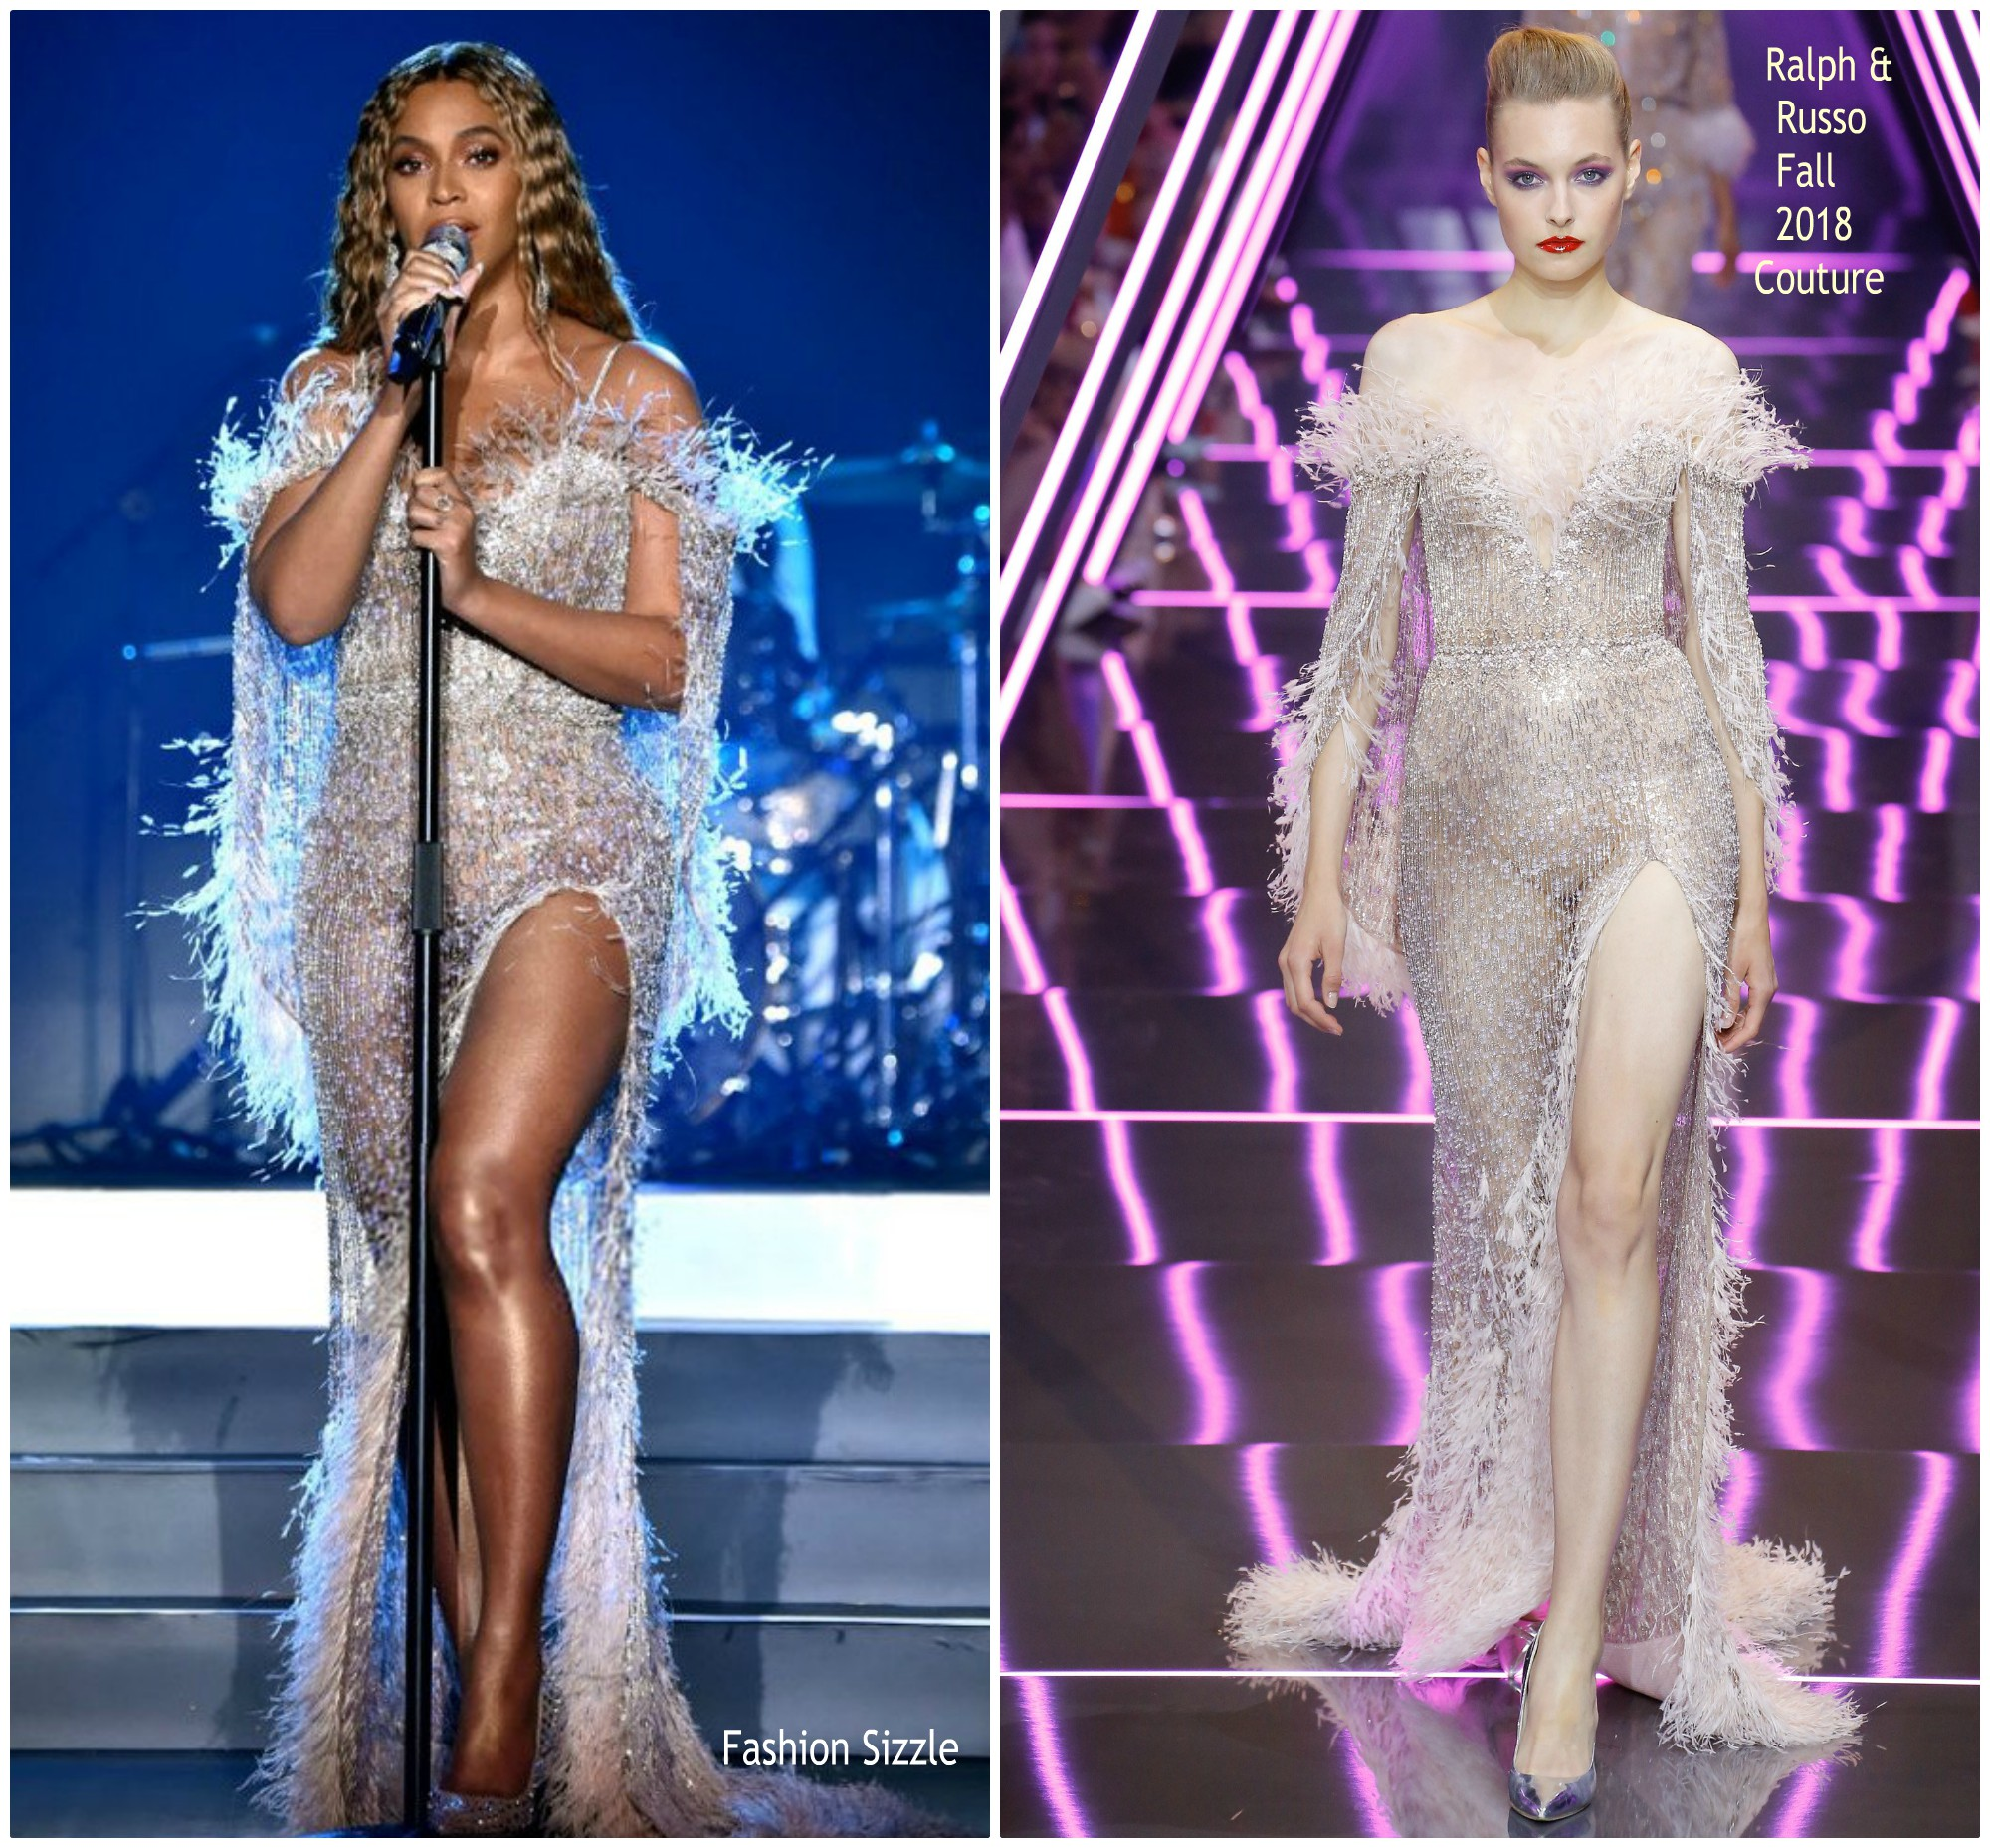 beyonce-knowles-in-ralph-russo-couture-city-of-hope-spirit-of-life-gala-2018